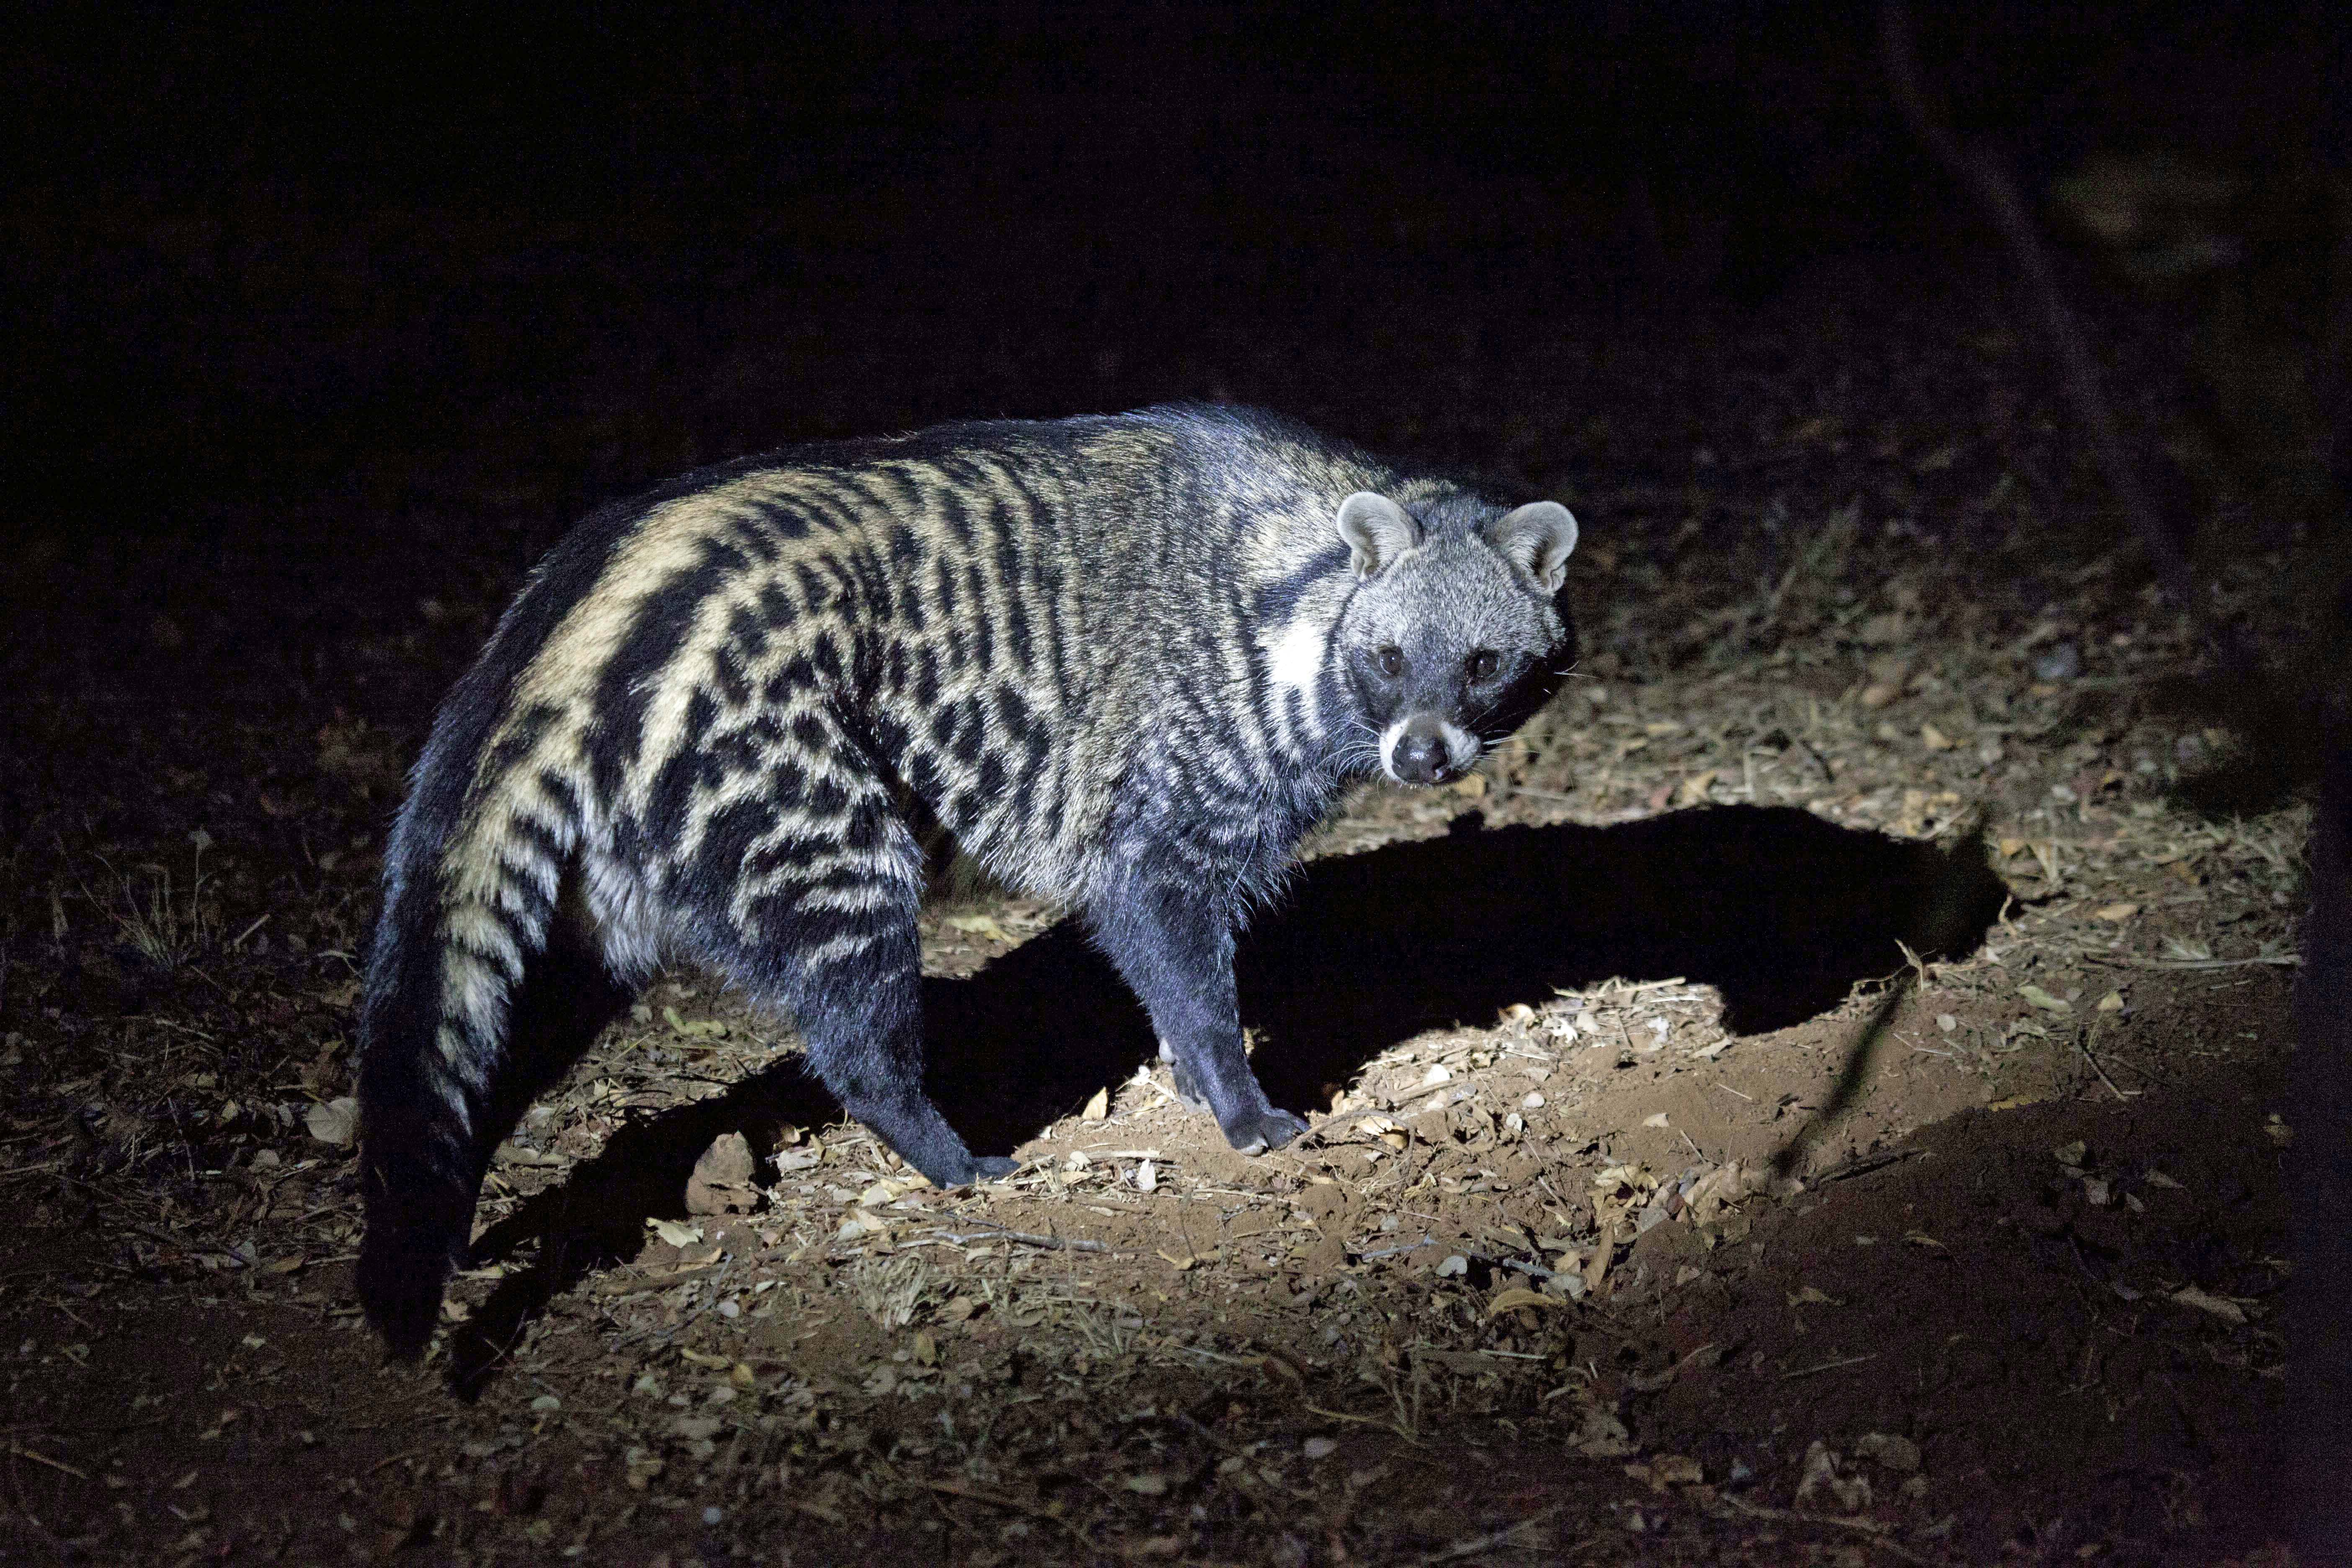 The African civet is an omnivorous generalist